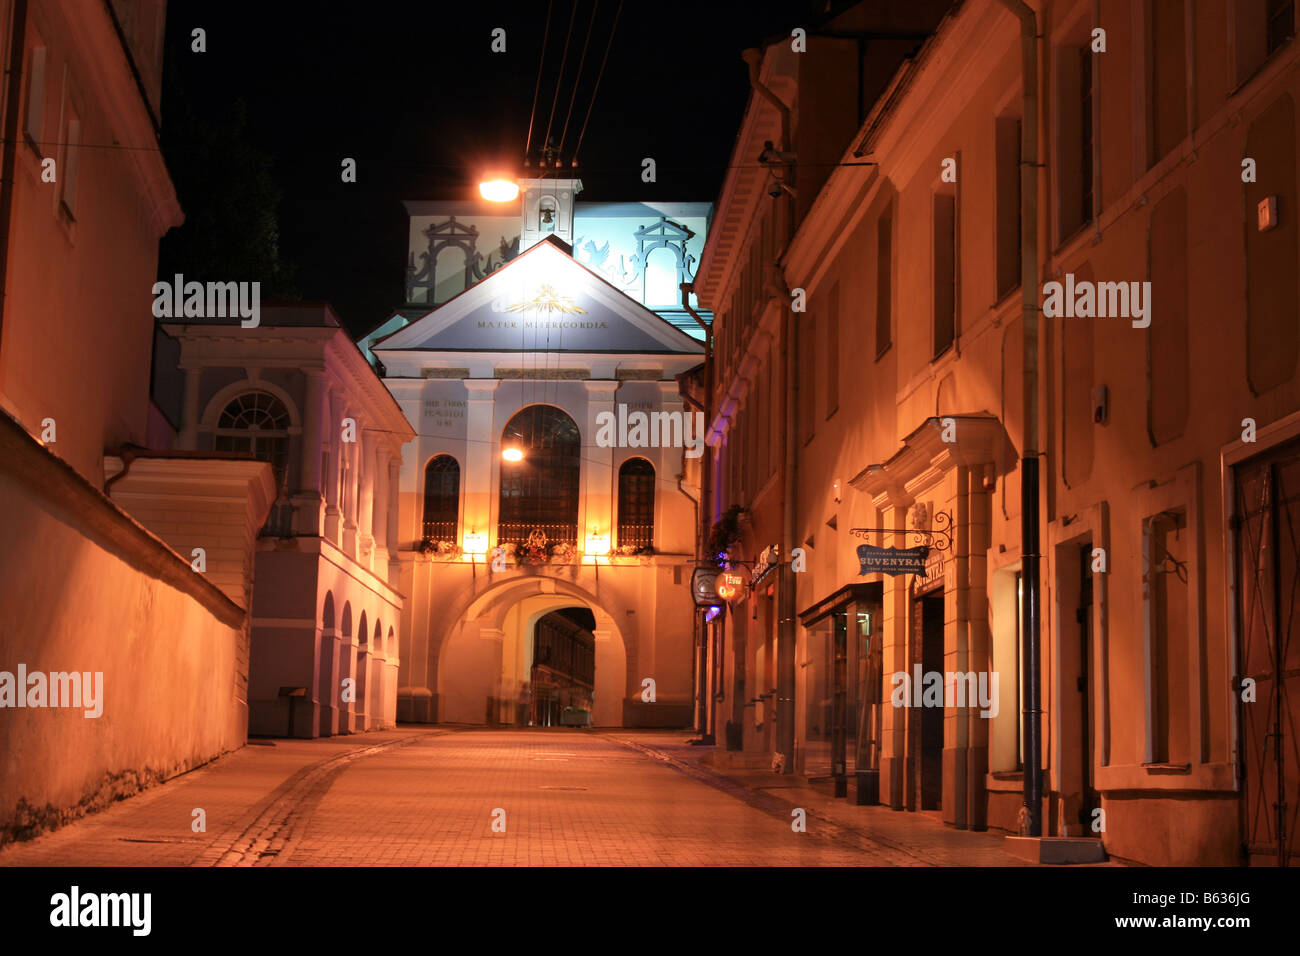 The chapel of the Dawn Gate, night view, Vilnius, Lithuania - Stock Image